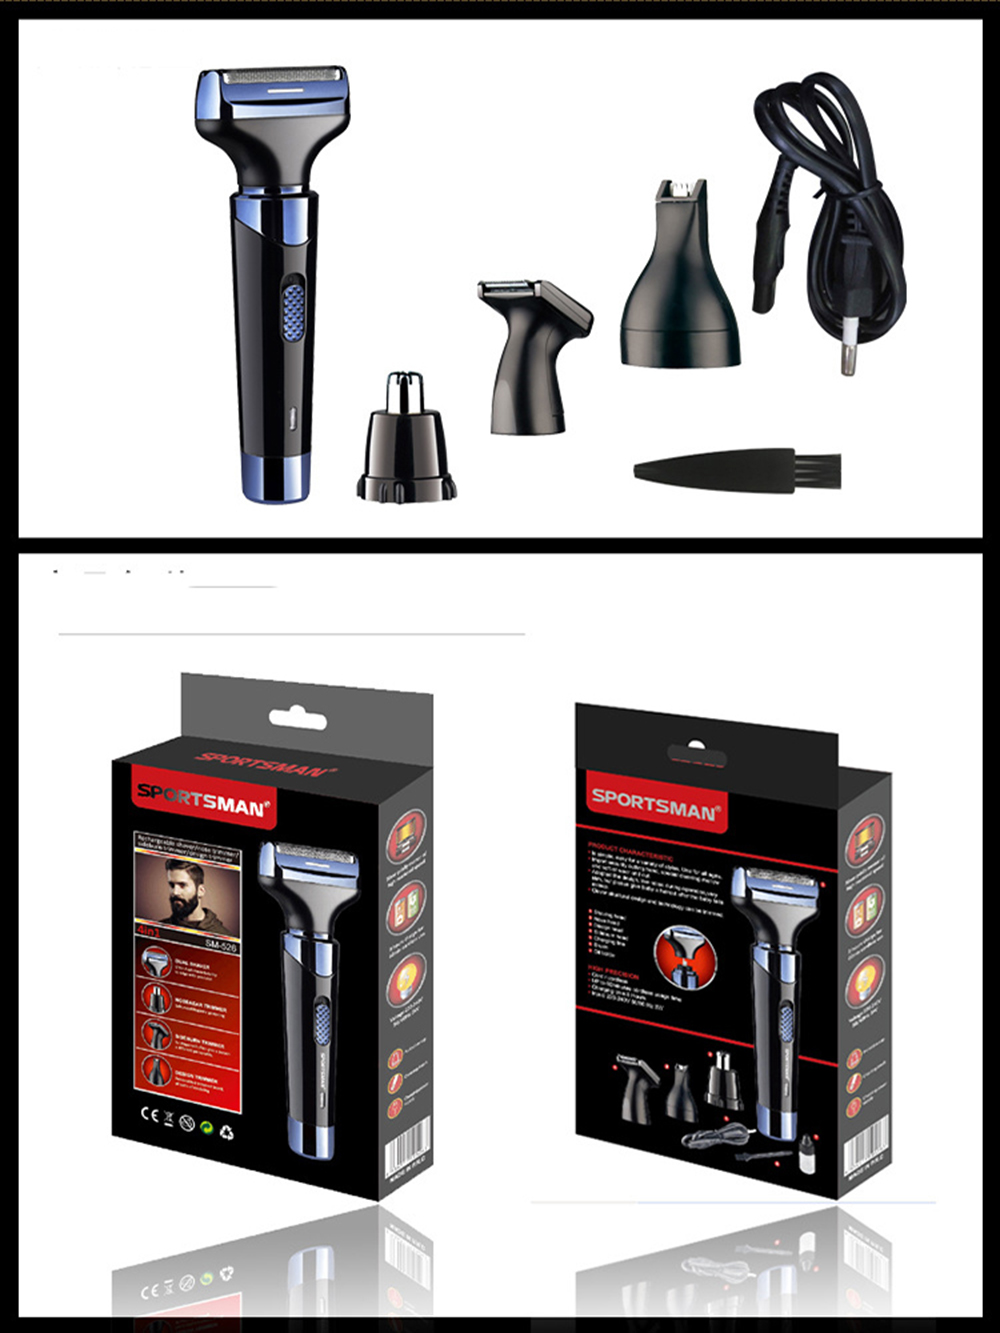 Mini Professional Electric Rechargeable Nose and Ear Hair Trimmer Shaver Temple Cut Personal Care Tools For Men